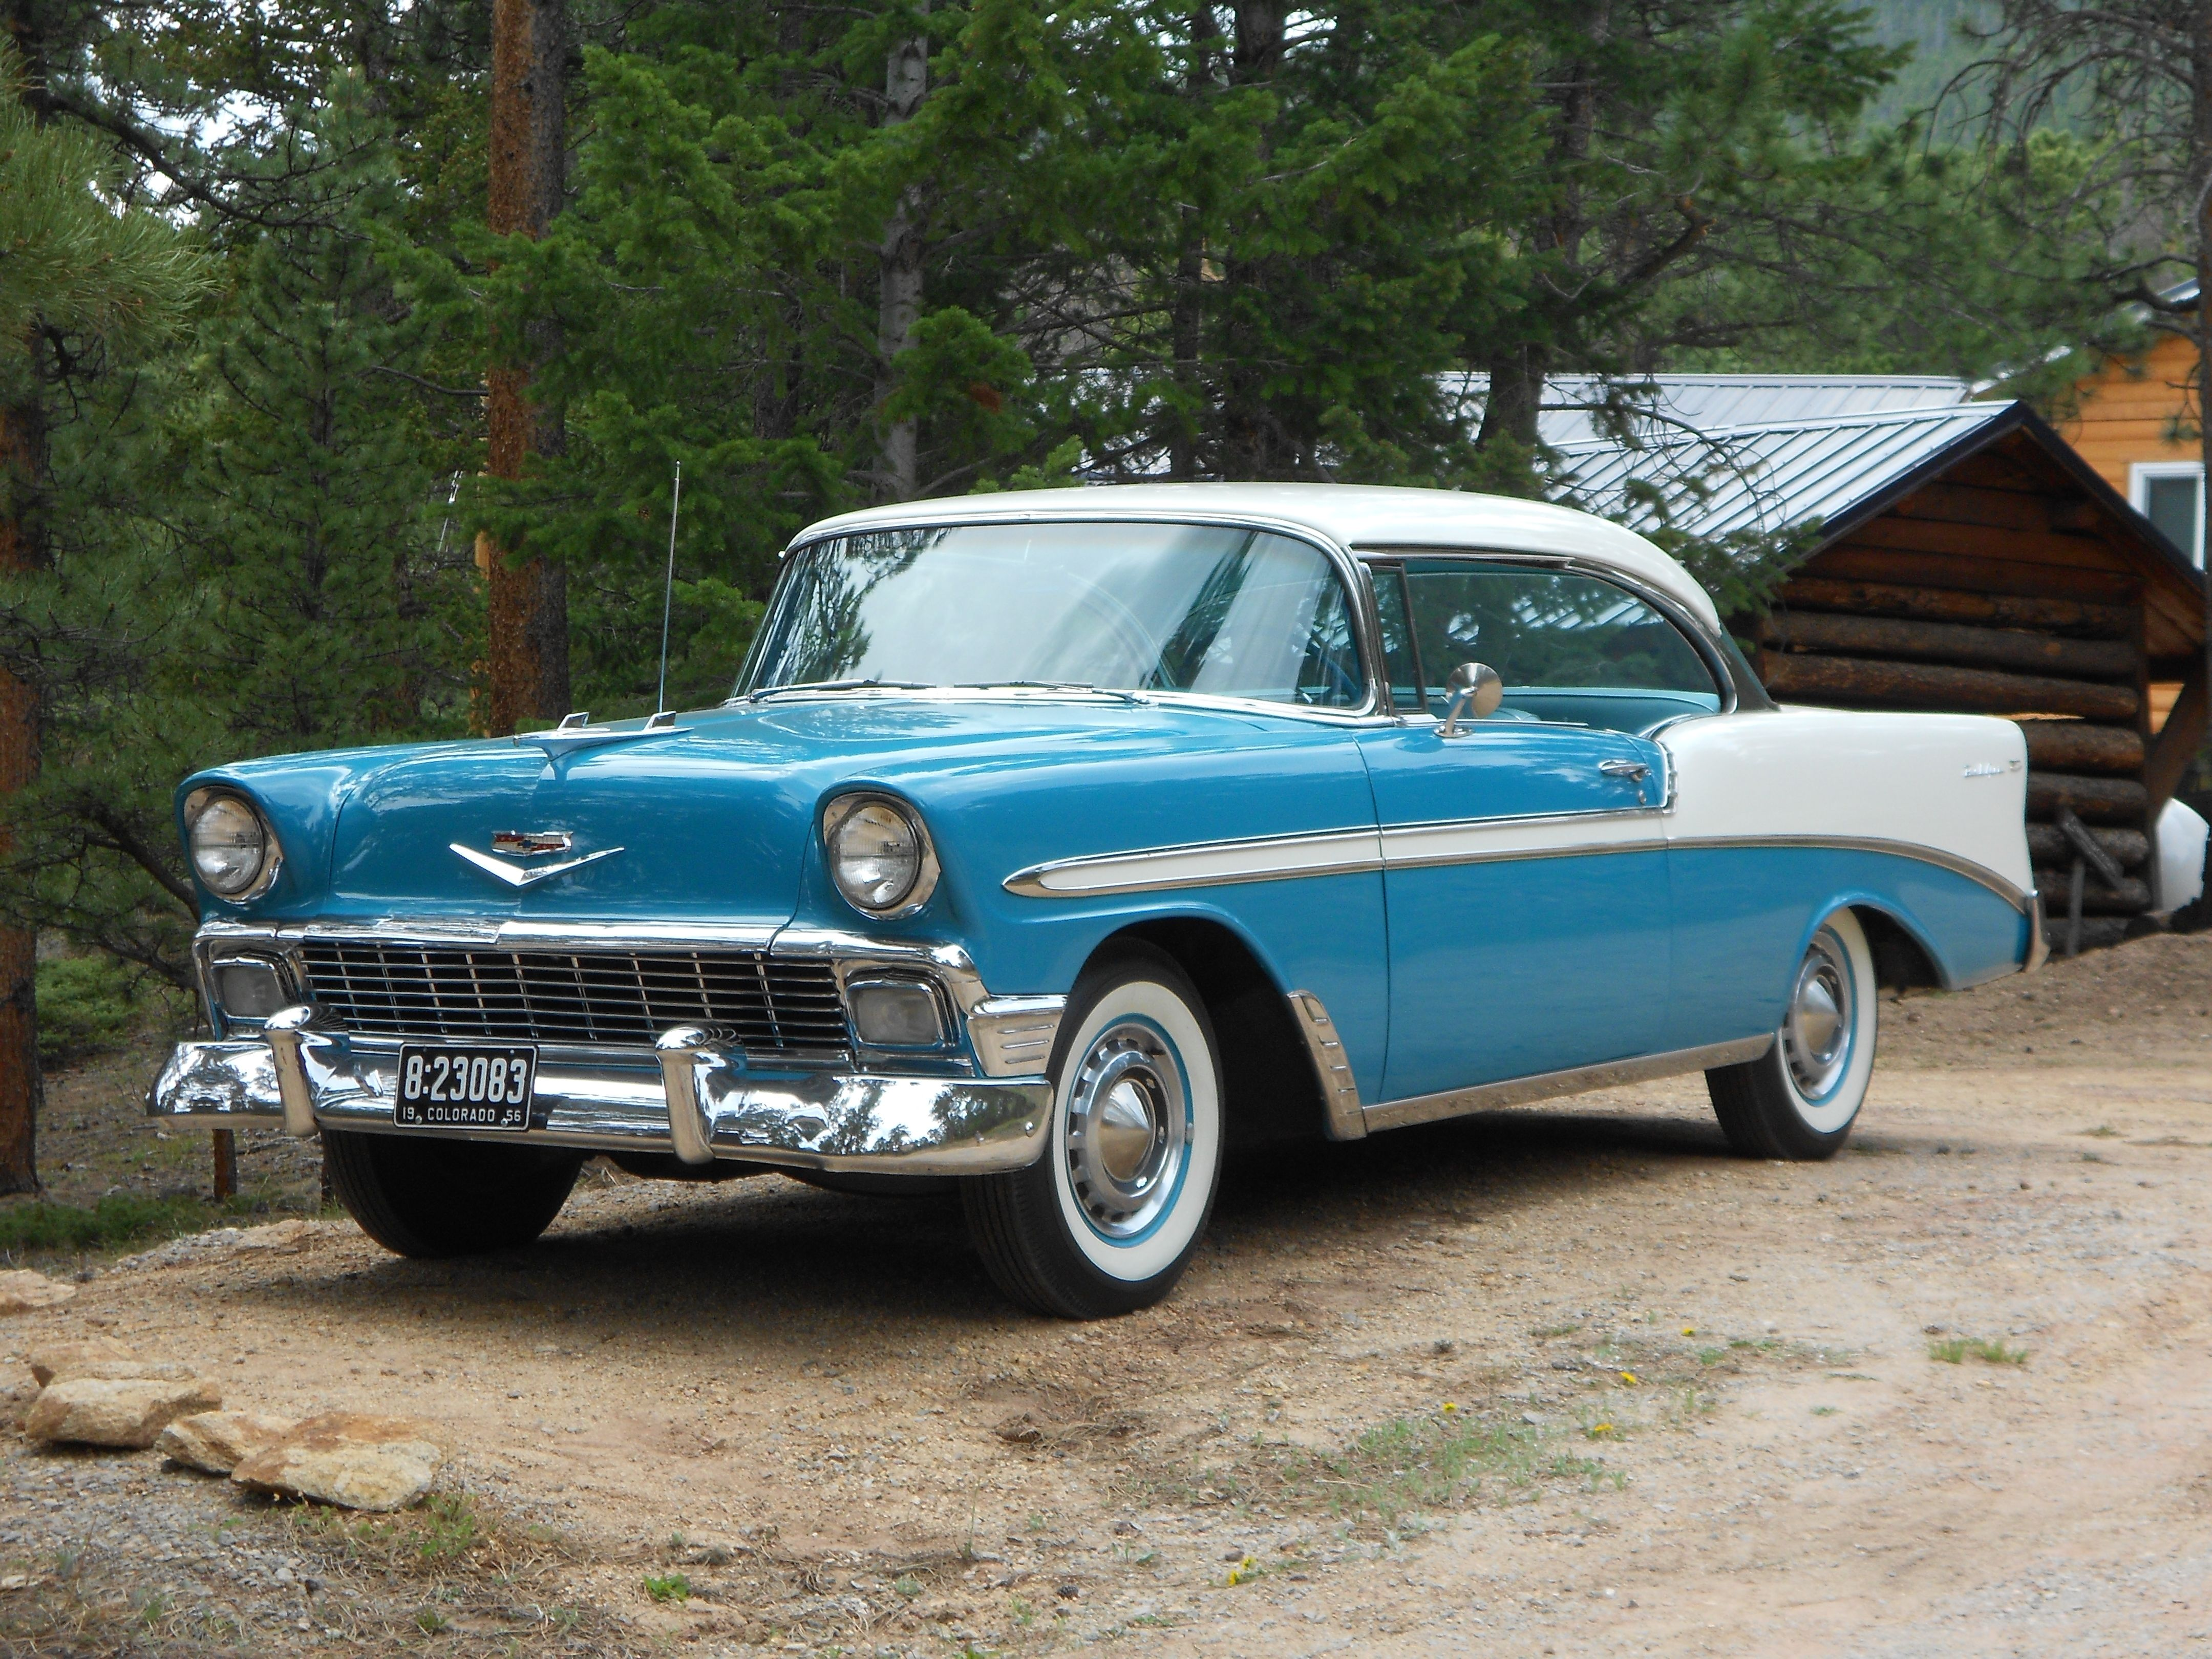 chevy cars 1956 | My Fond Memories | Pinterest | Cars, Bel air and ...